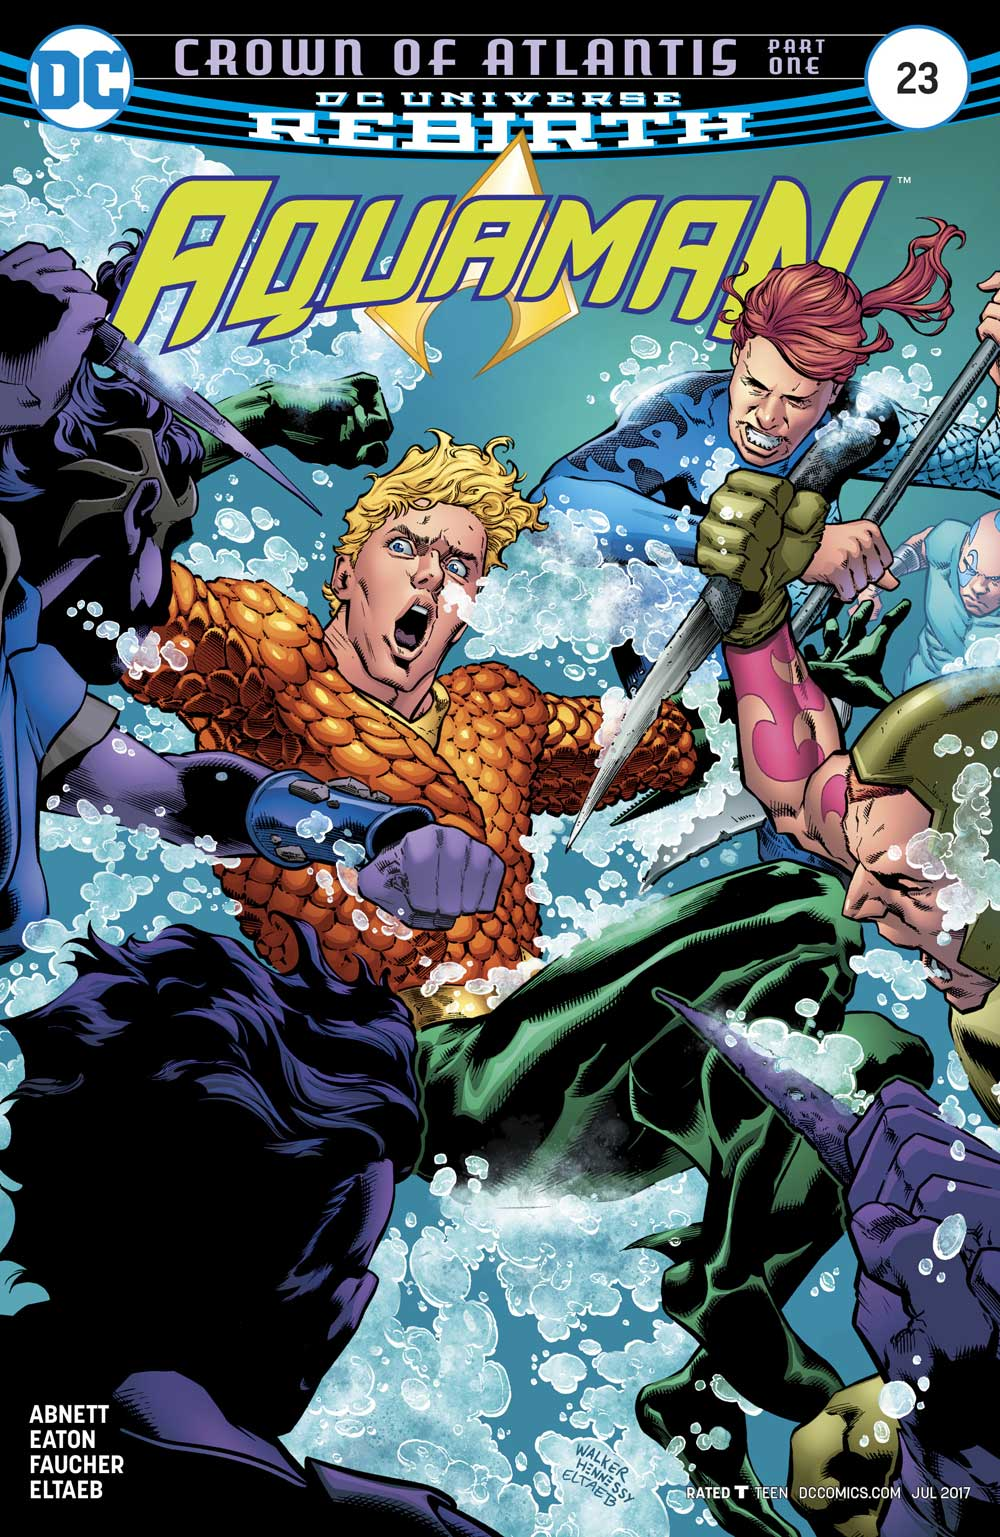 Aquaman #23 cover by Brad Walker, Andrew Hennessy and Eltaeb